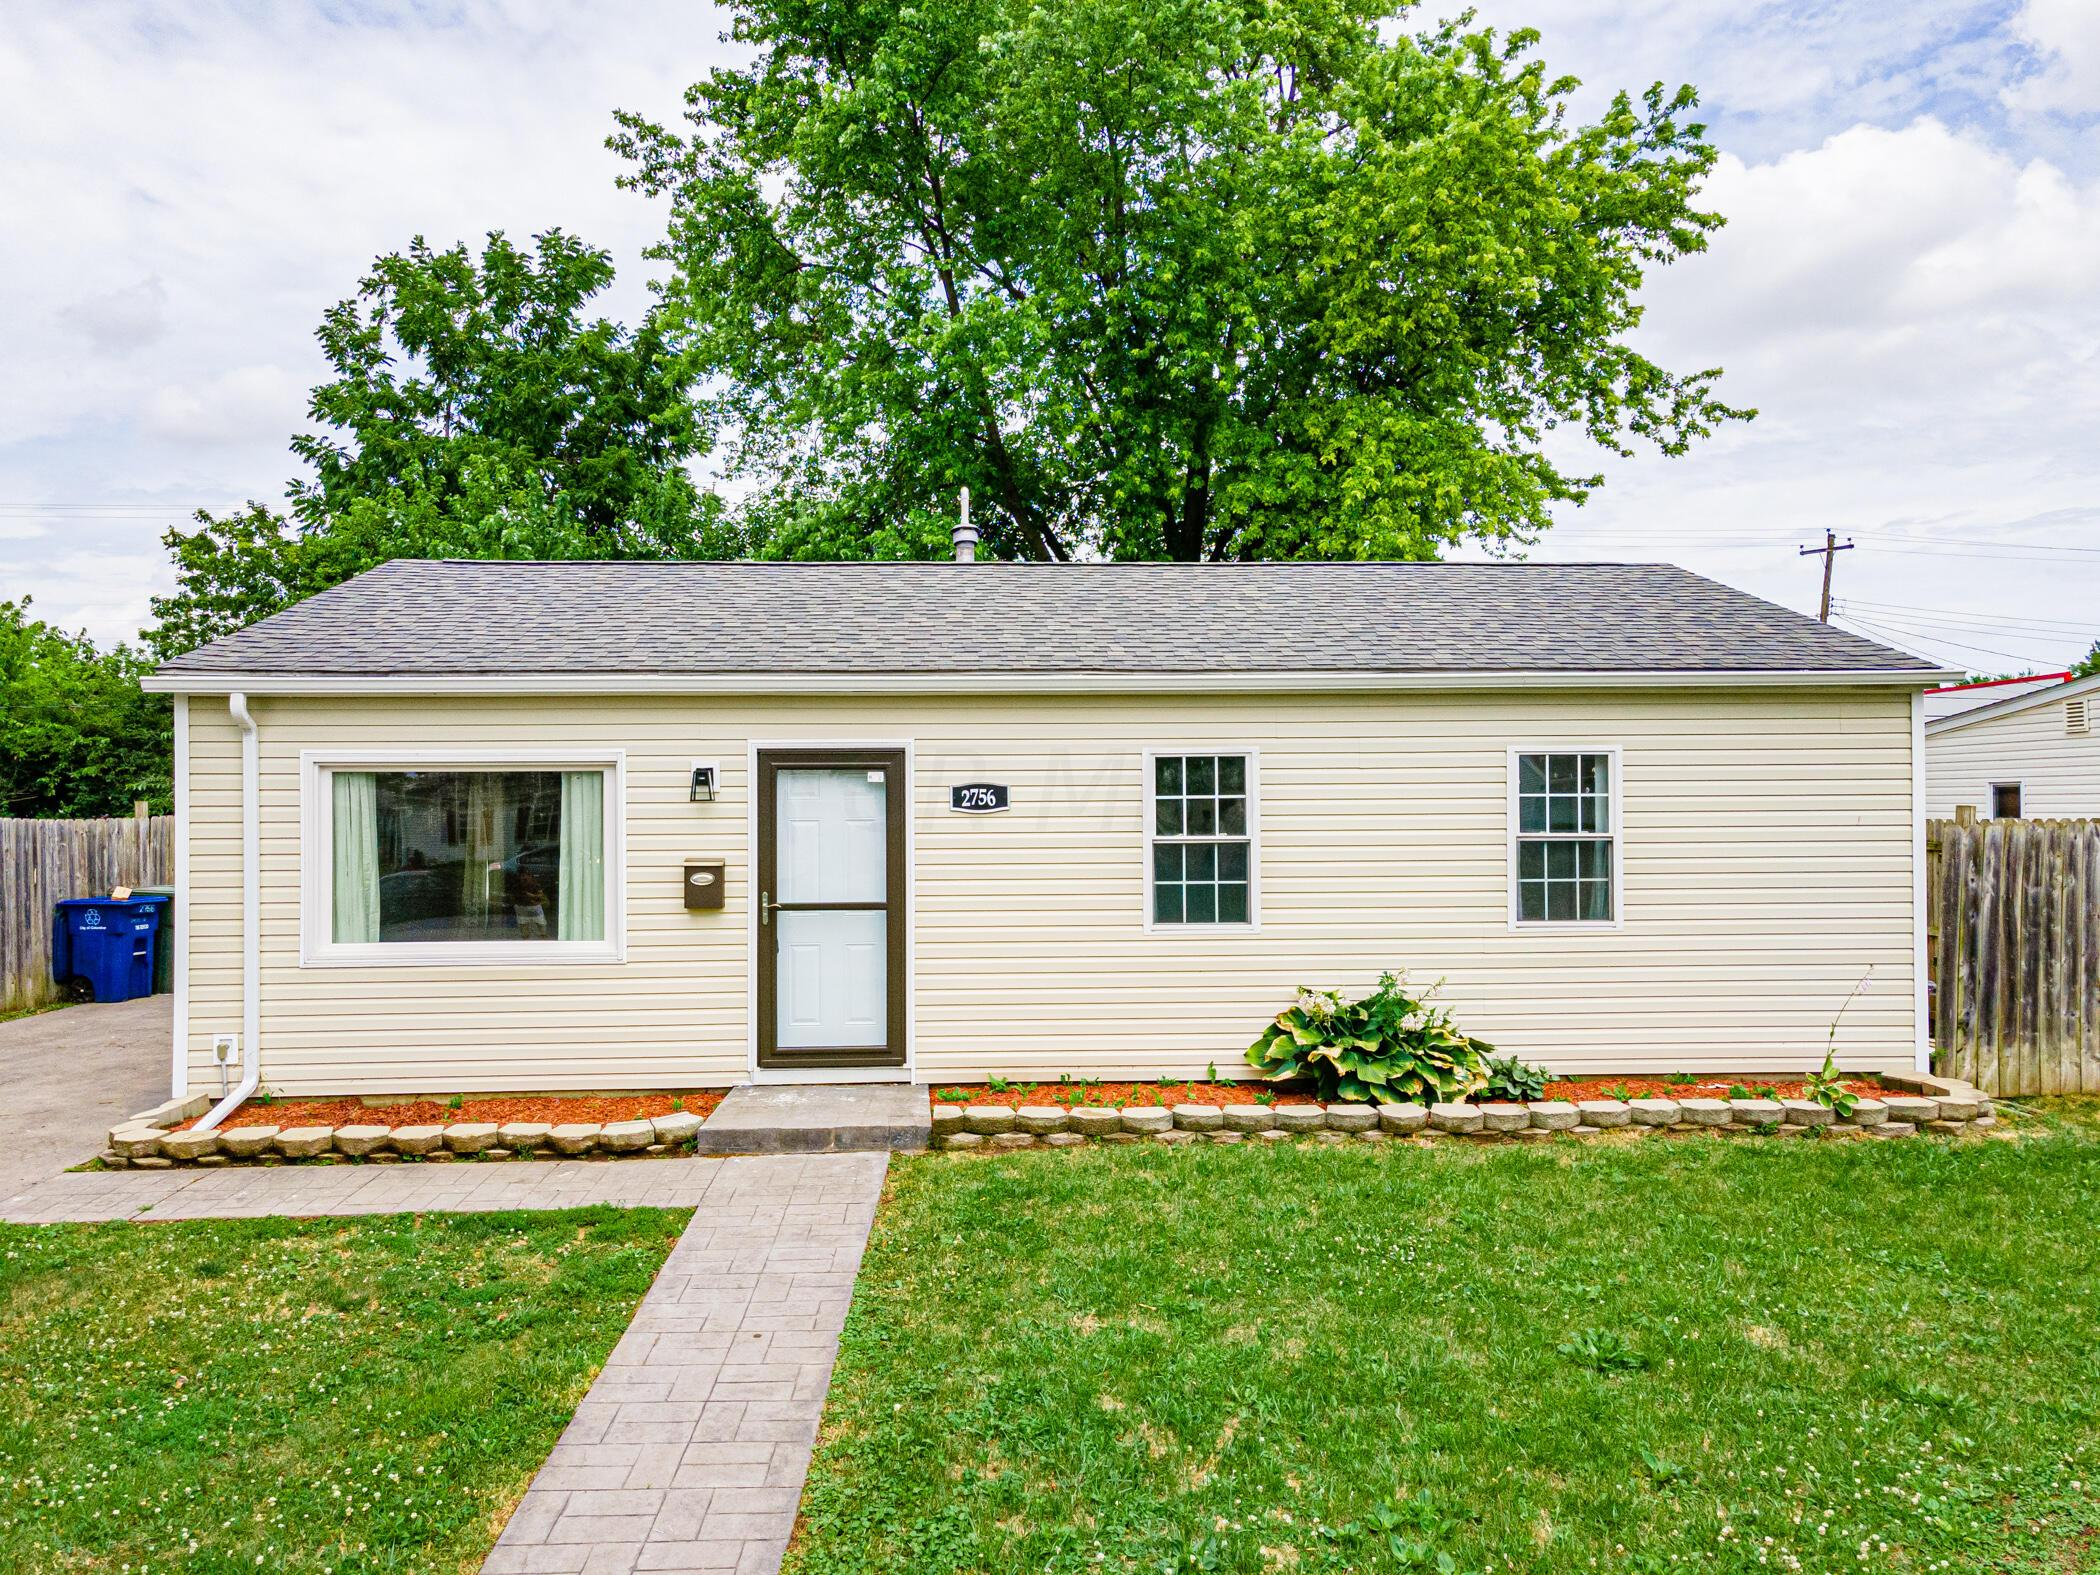 2756 Dolby Dr, Columbus, OH 43207_023